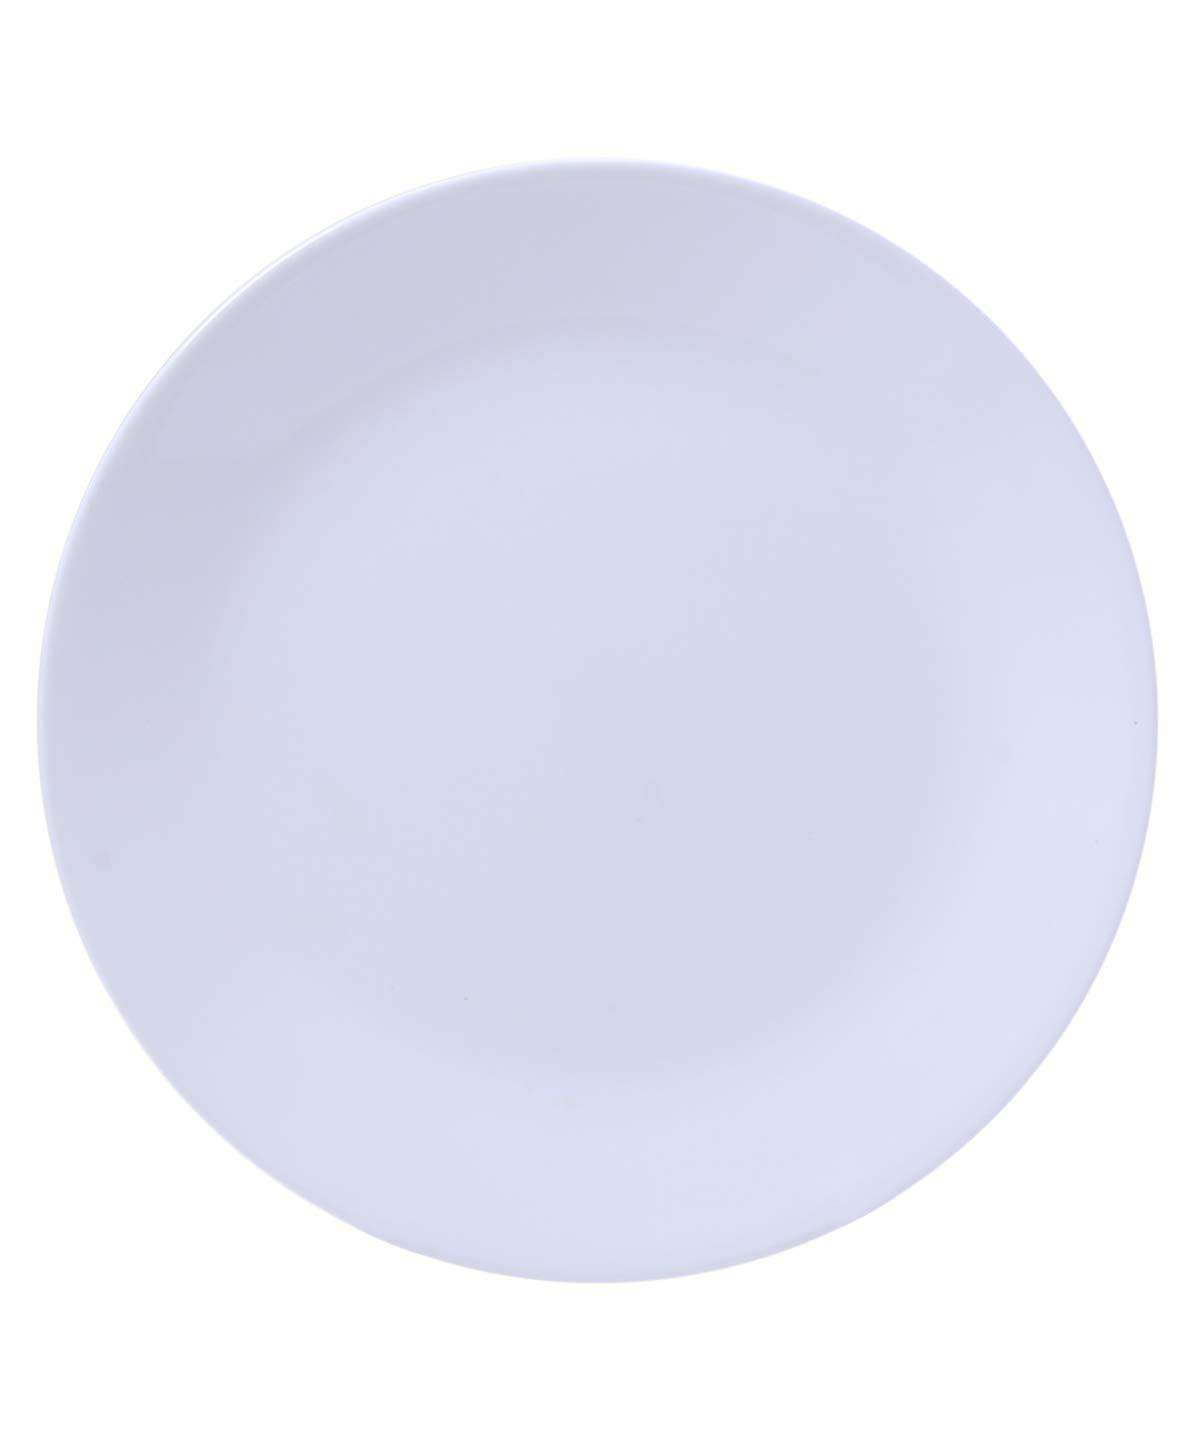 Corelle-Dinner Plate Winter Frost White 11